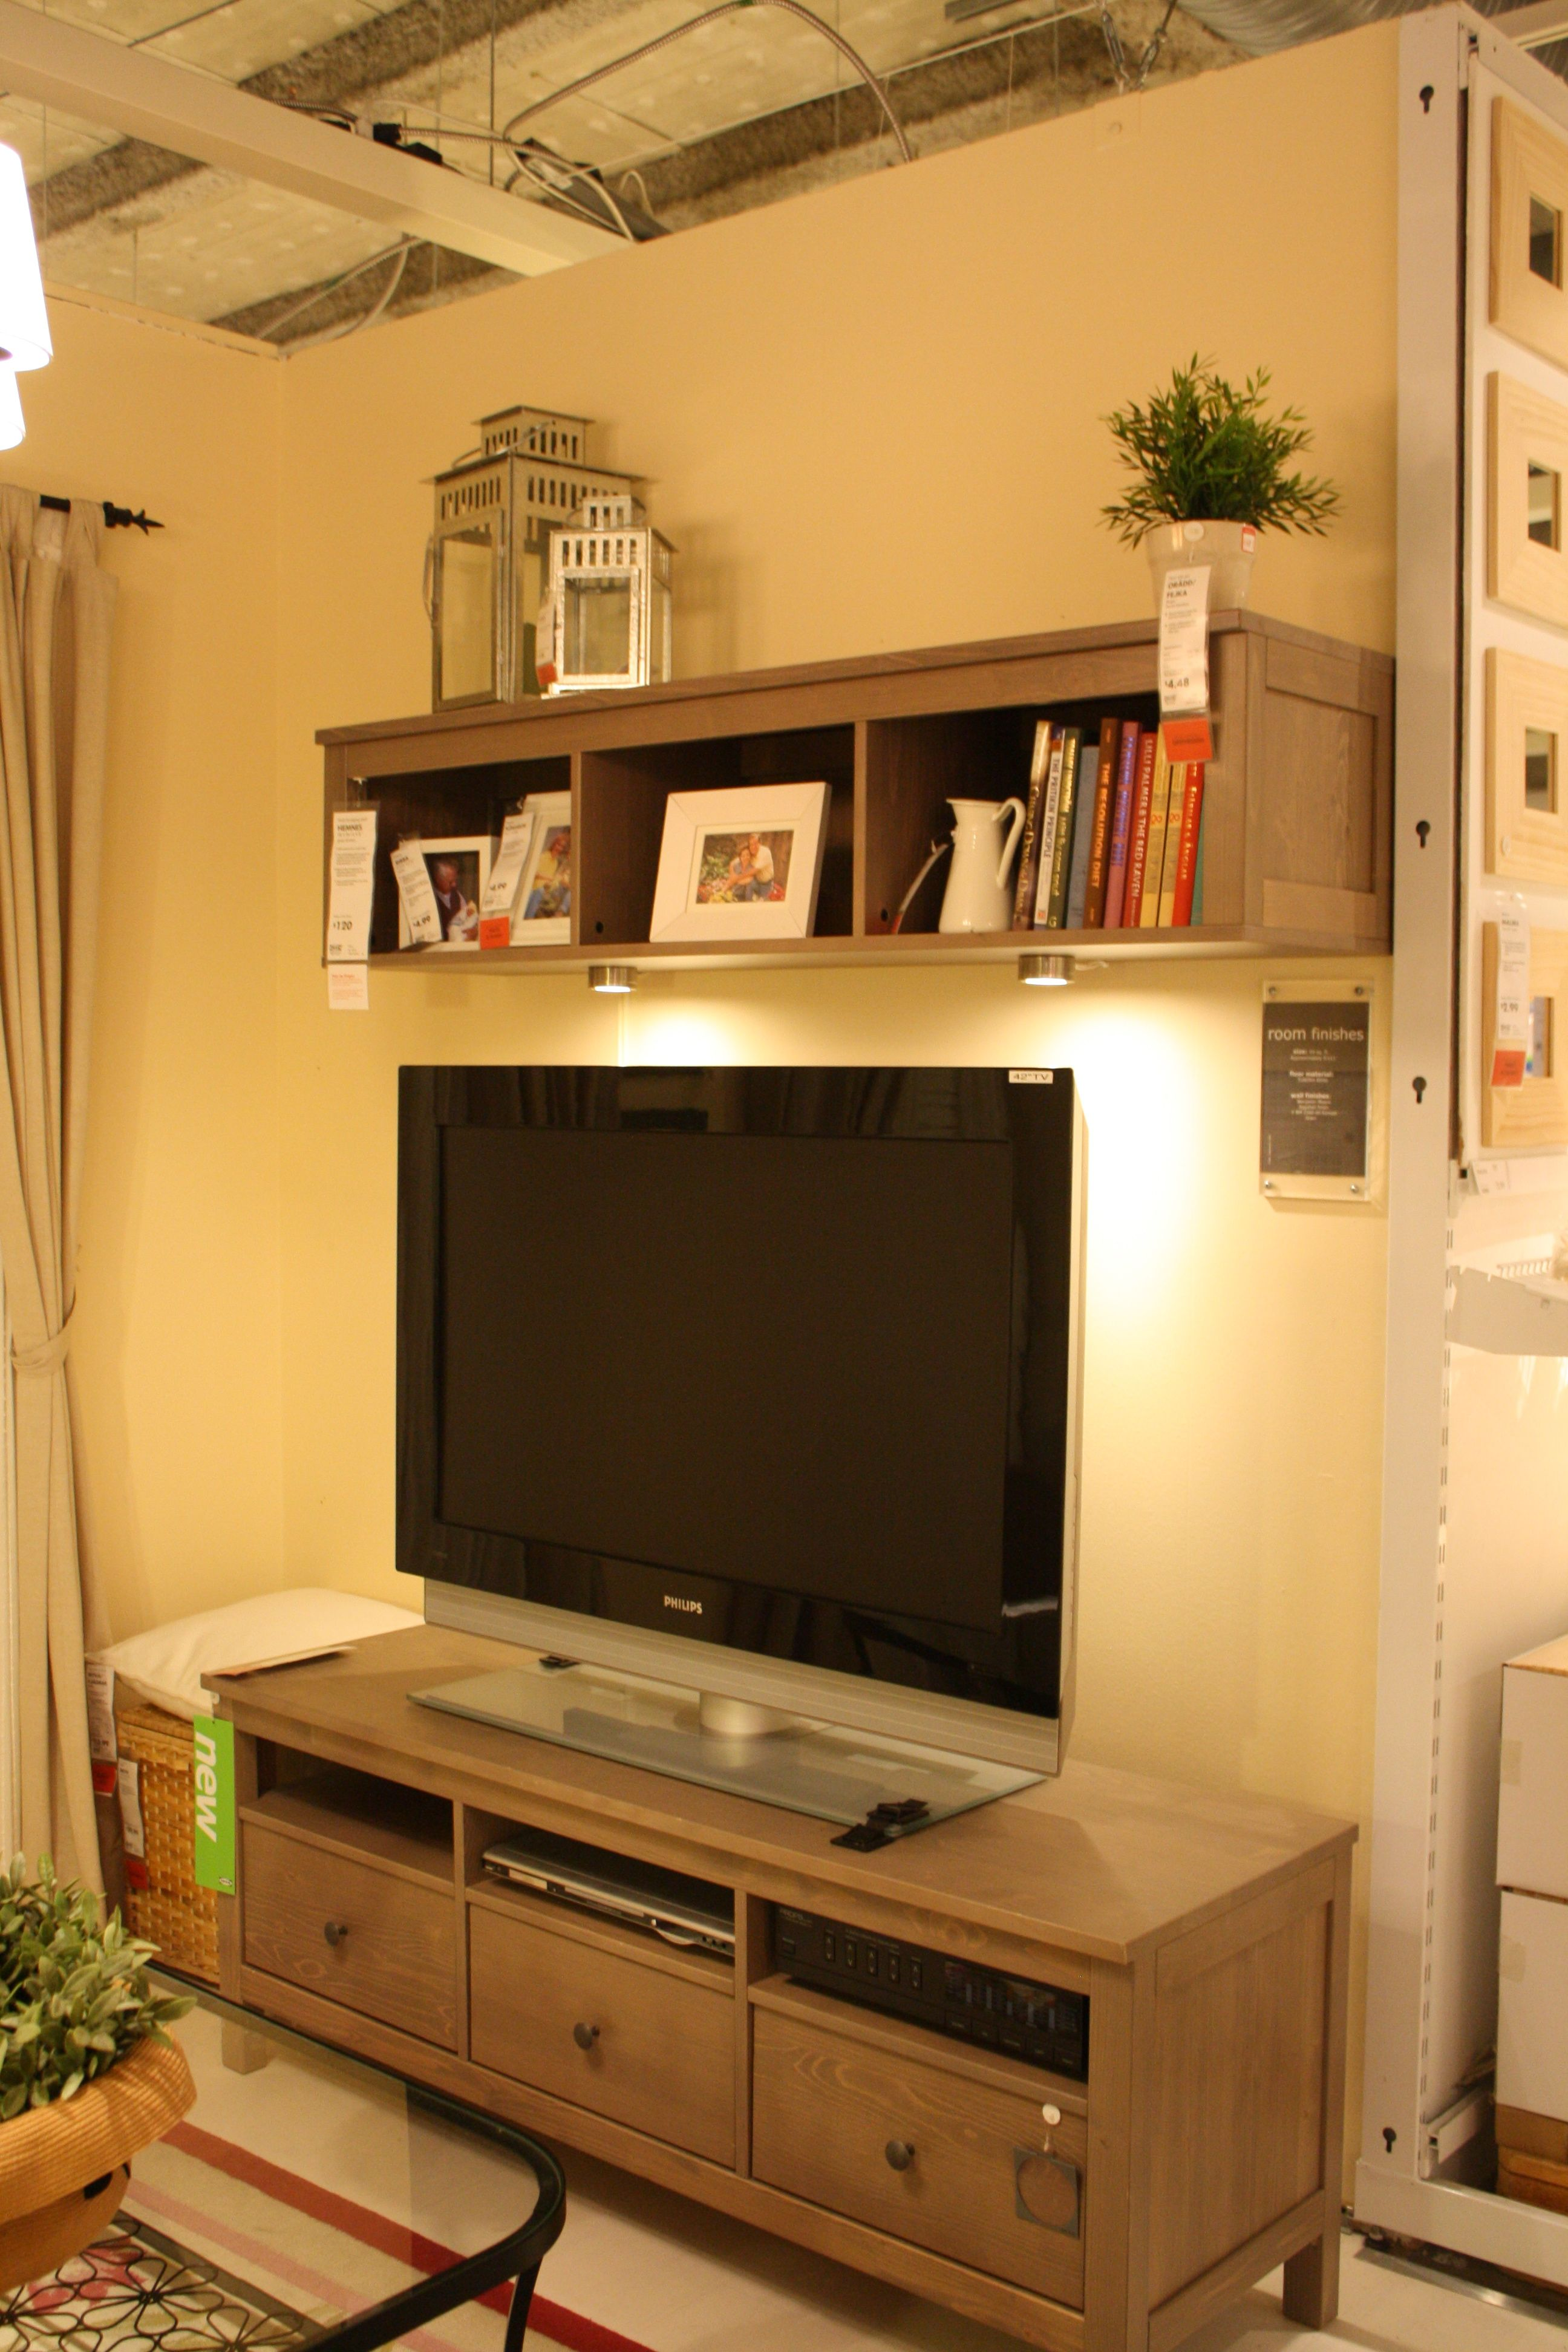 Pin By Barbed Wire On Ikea Tv Decor Shelf Above Tv